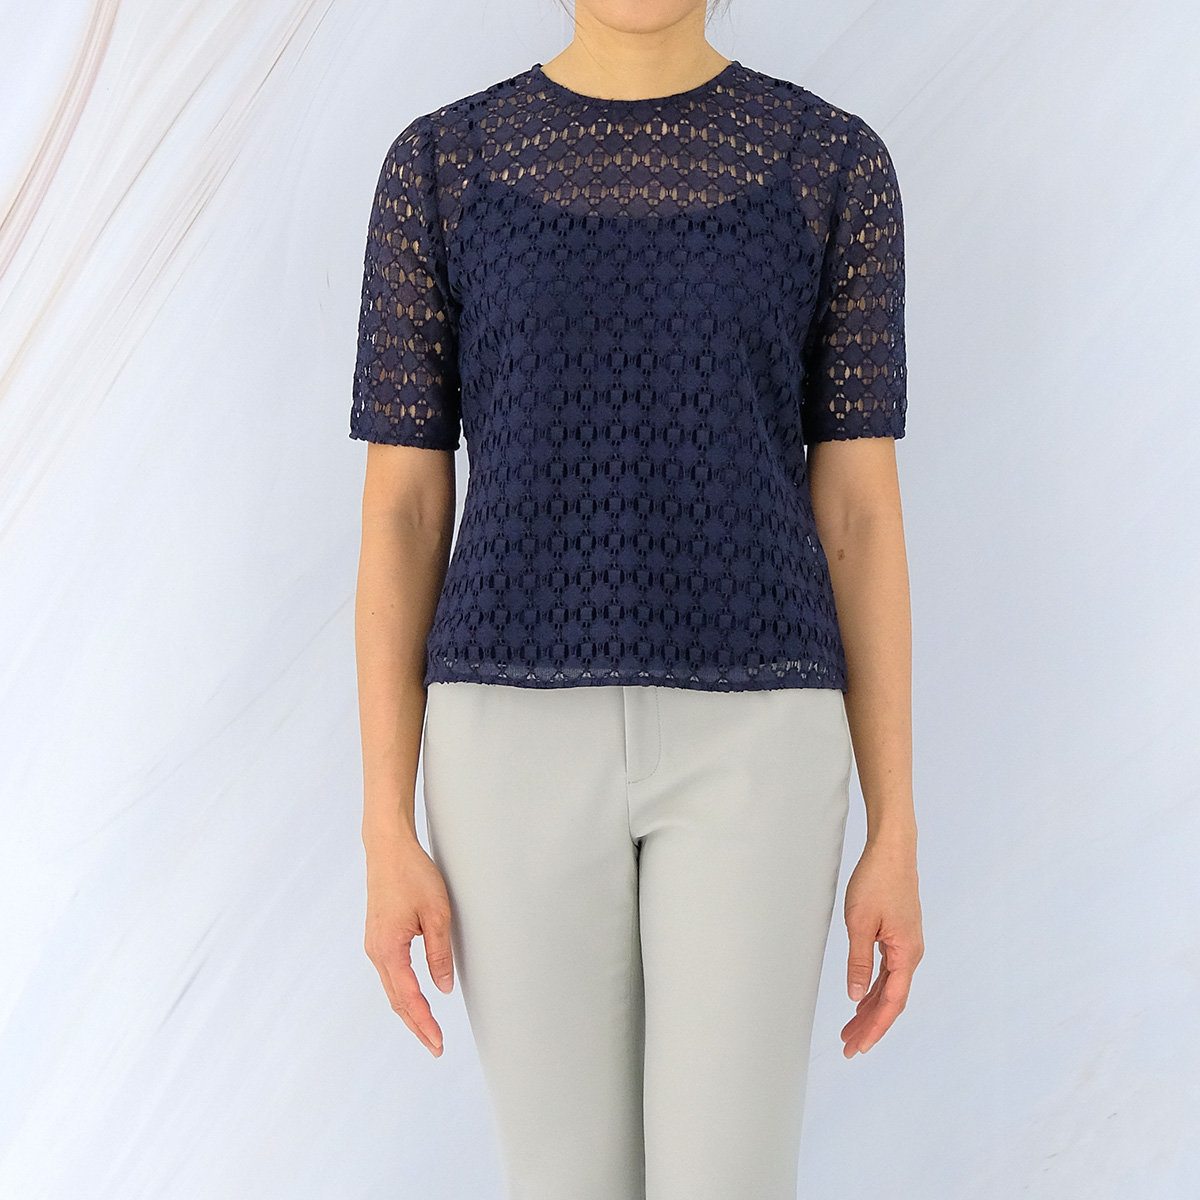 Women's Geometric Lace Fitted Top (Dark Navy)